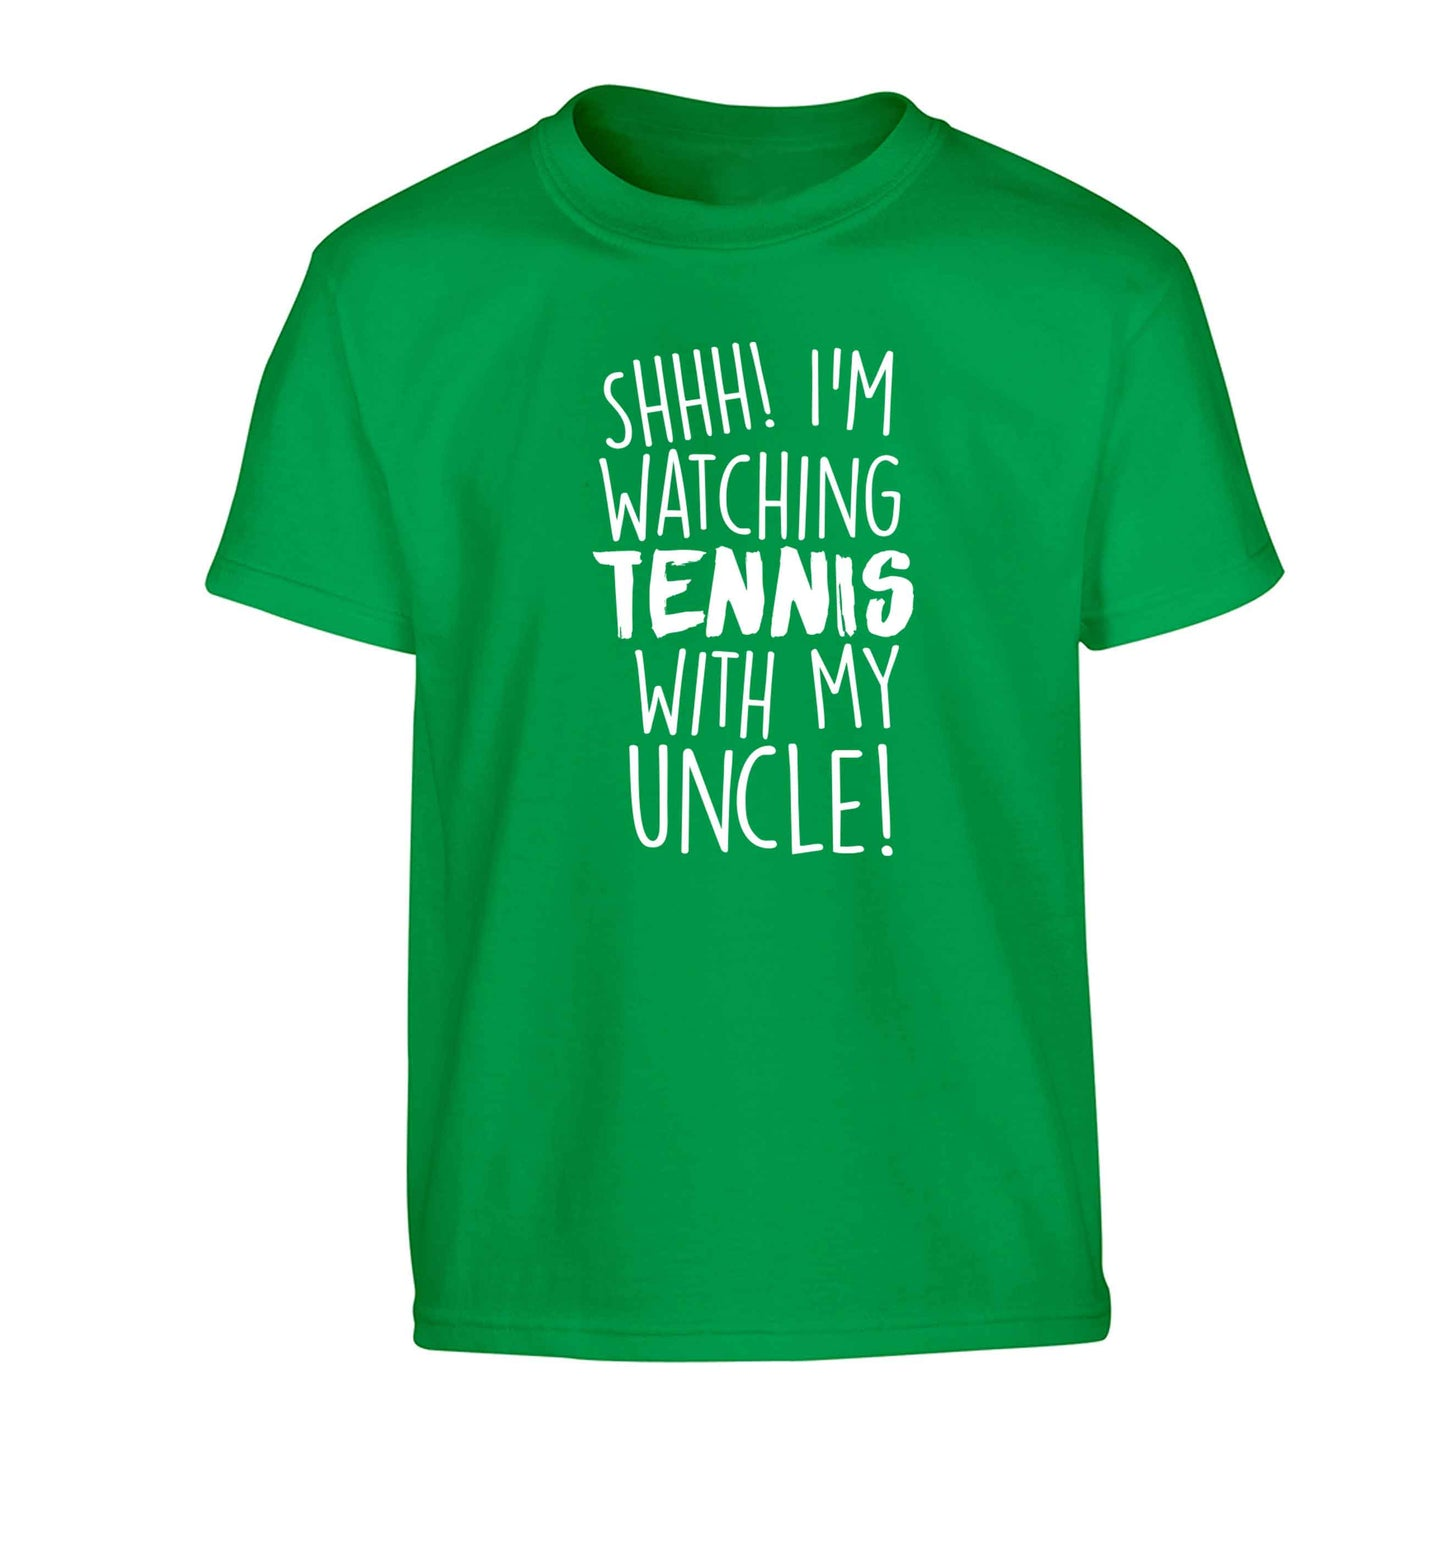 Shh! I'm watching tennis with my uncle! Children's green Tshirt 12-13 Years